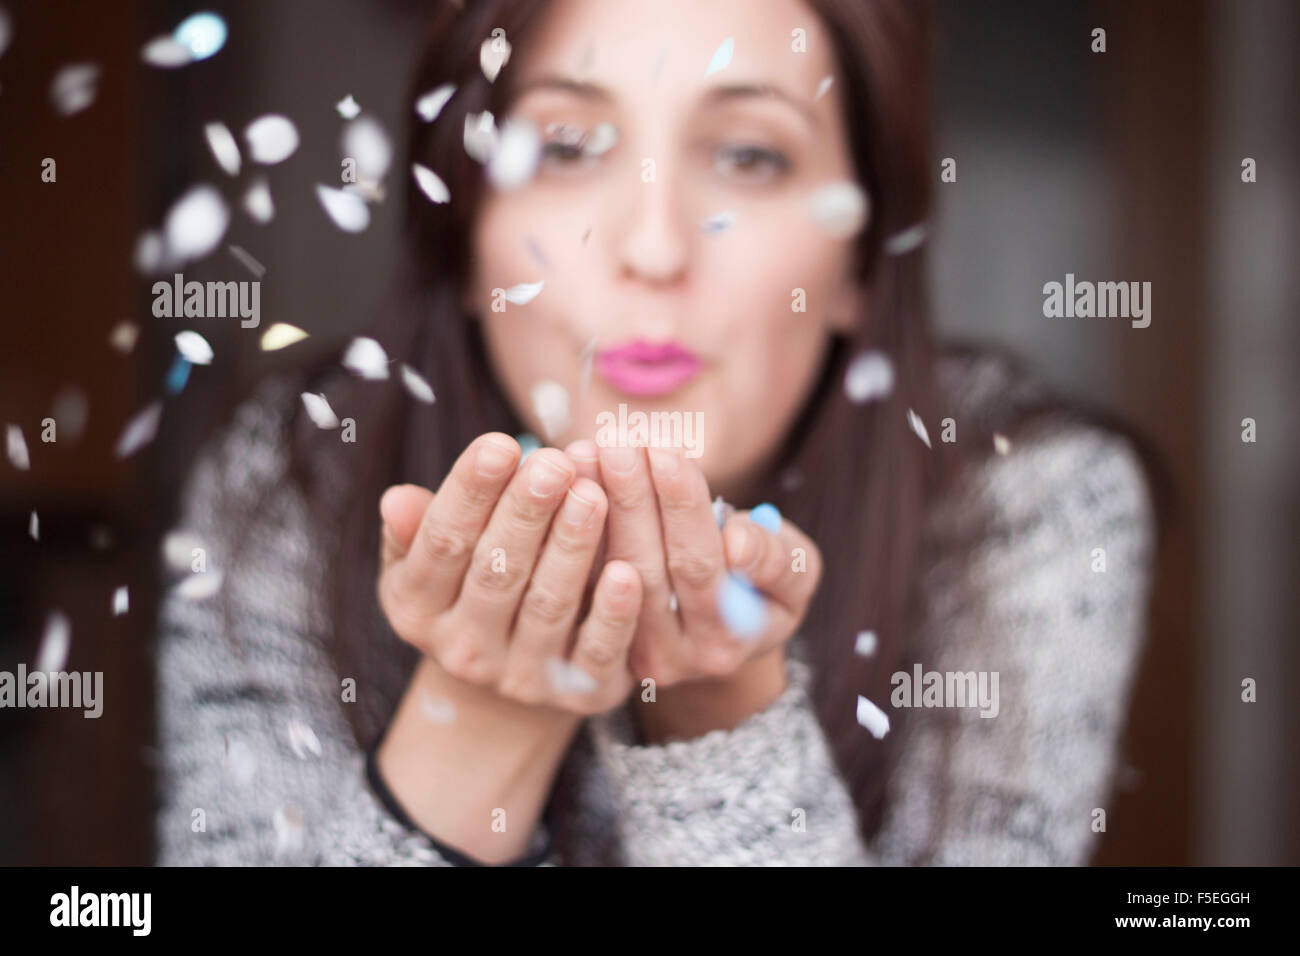 Woman blowing confetti in her hands - Stock Image